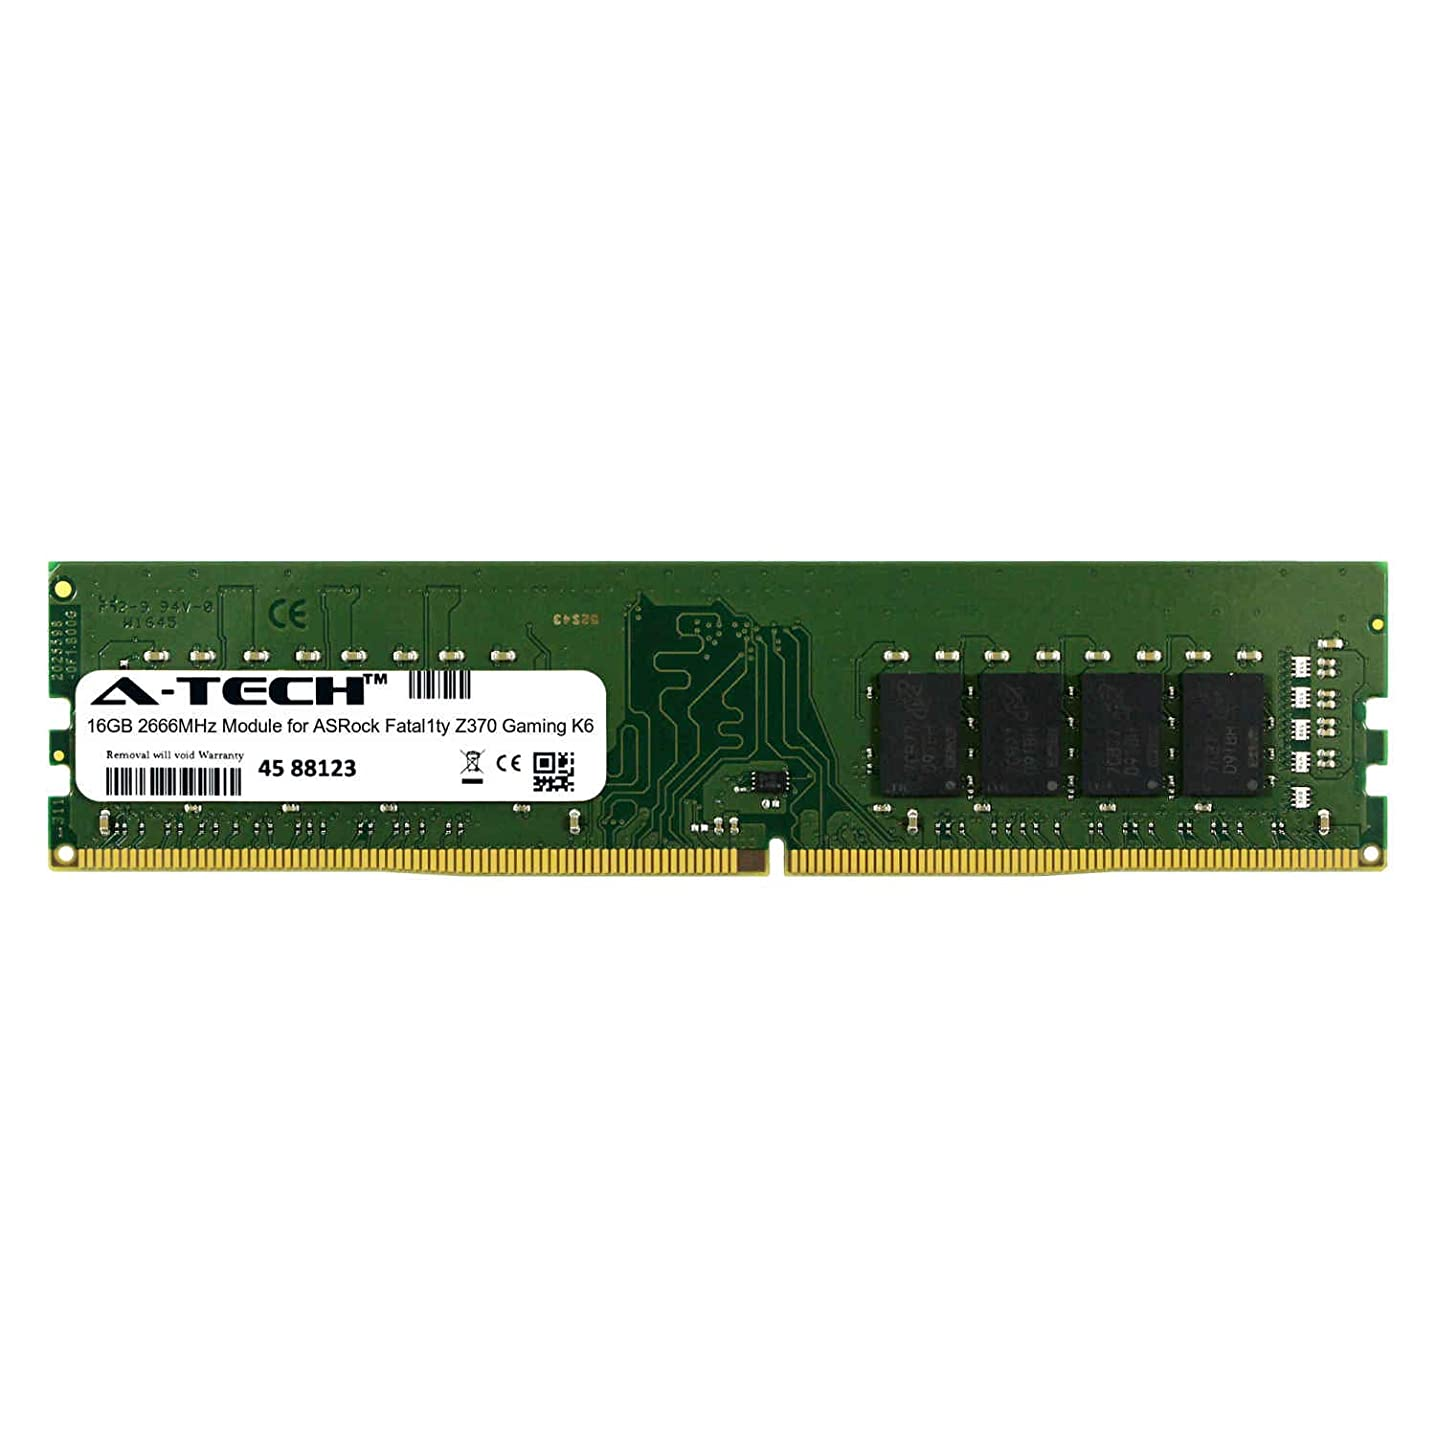 A-Tech 16GB Module for ASRock Fatal1ty Z370 Gaming K6 Desktop & Workstation Motherboard Compatible DDR4 2666Mhz Memory Ram (ATMS275178A25823X1)